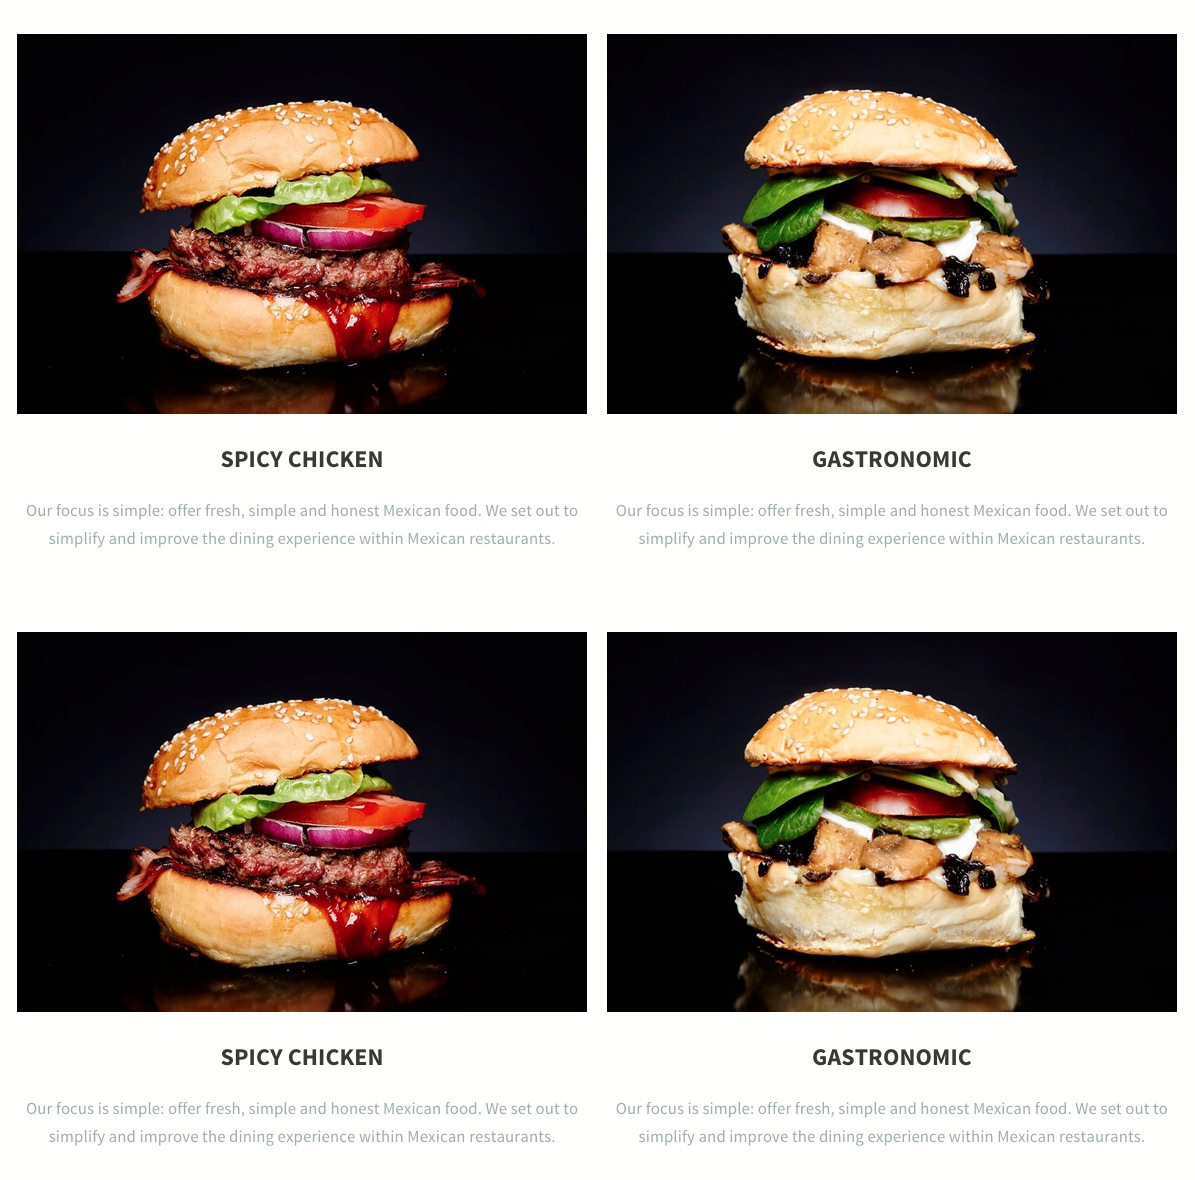 Modern fast food restaurant website from LeadPages